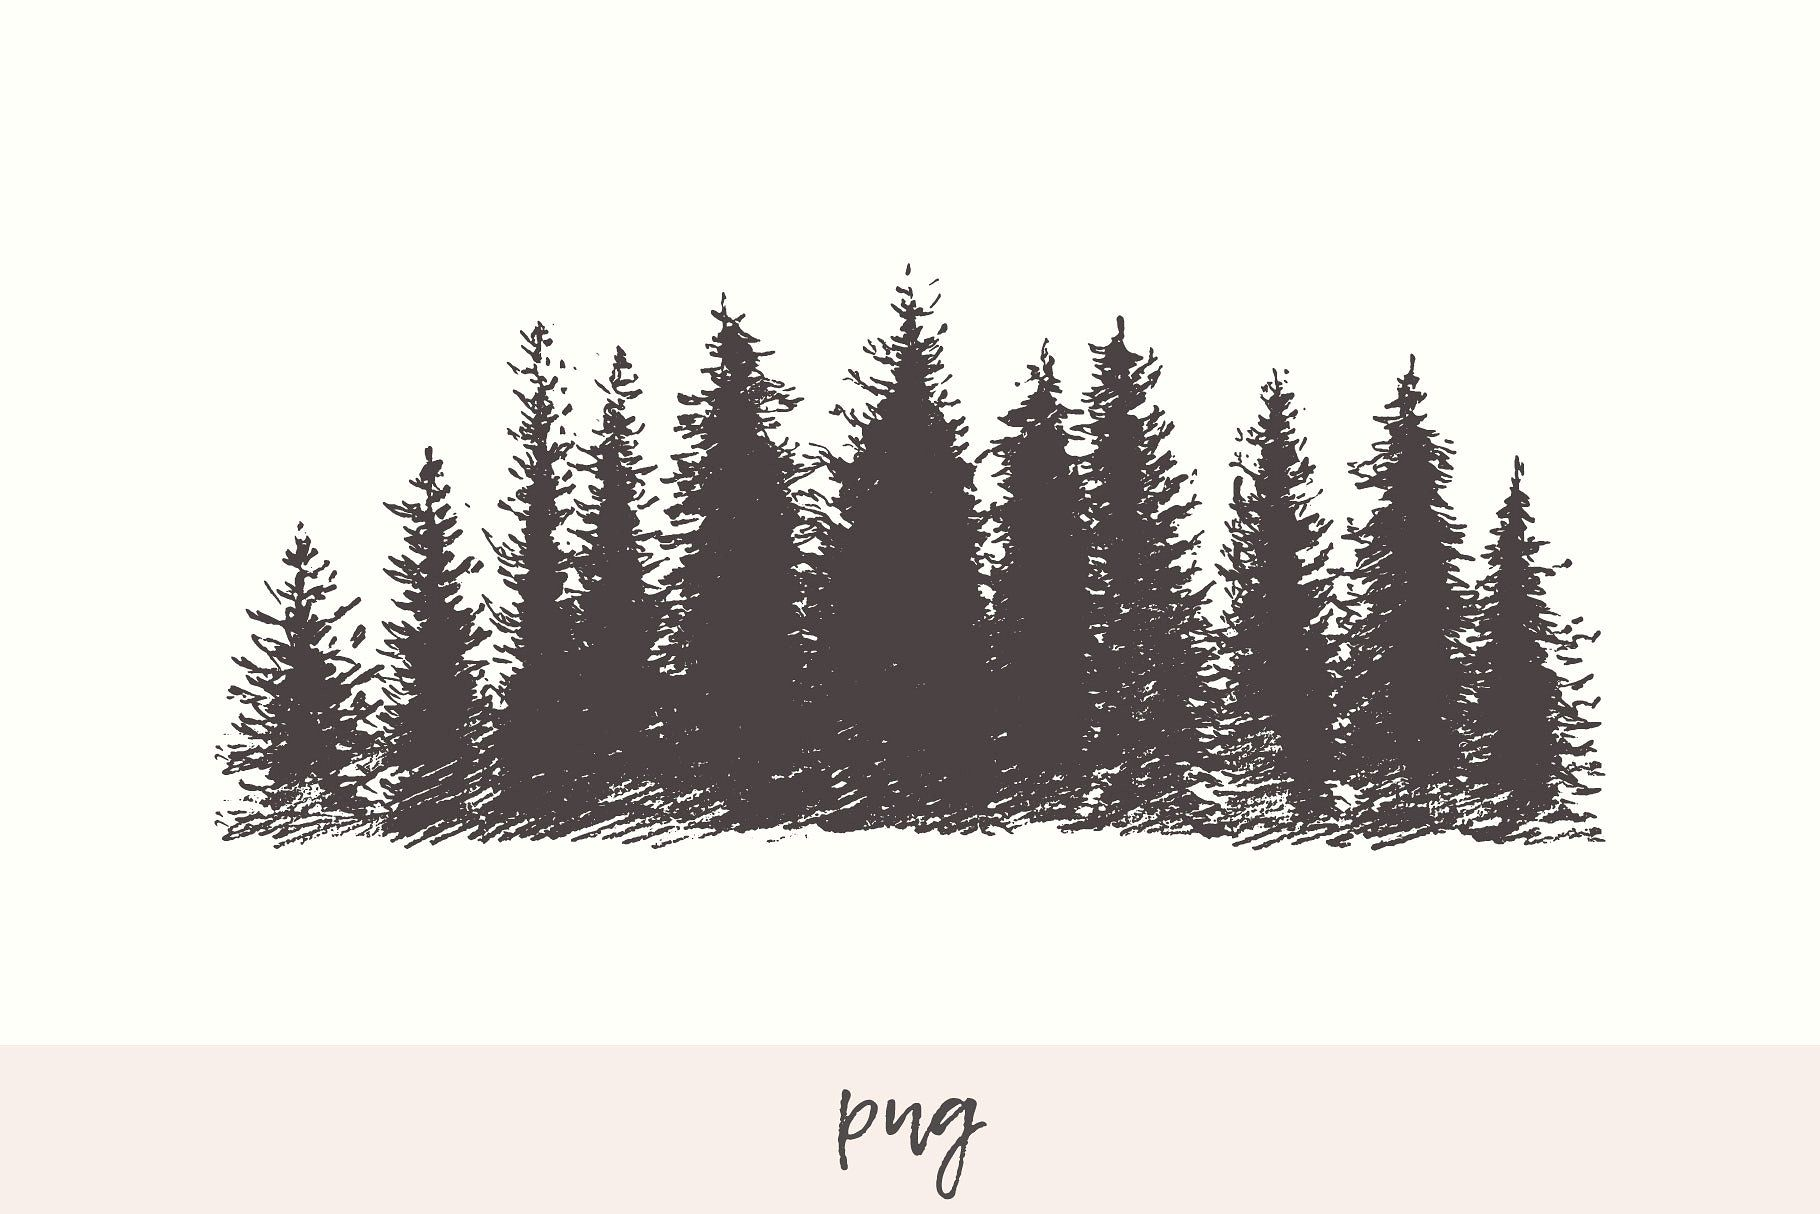 Mountain Slope With A Fir Forest Png Dpi Transparent Jpg Graphic Just Ink Forest